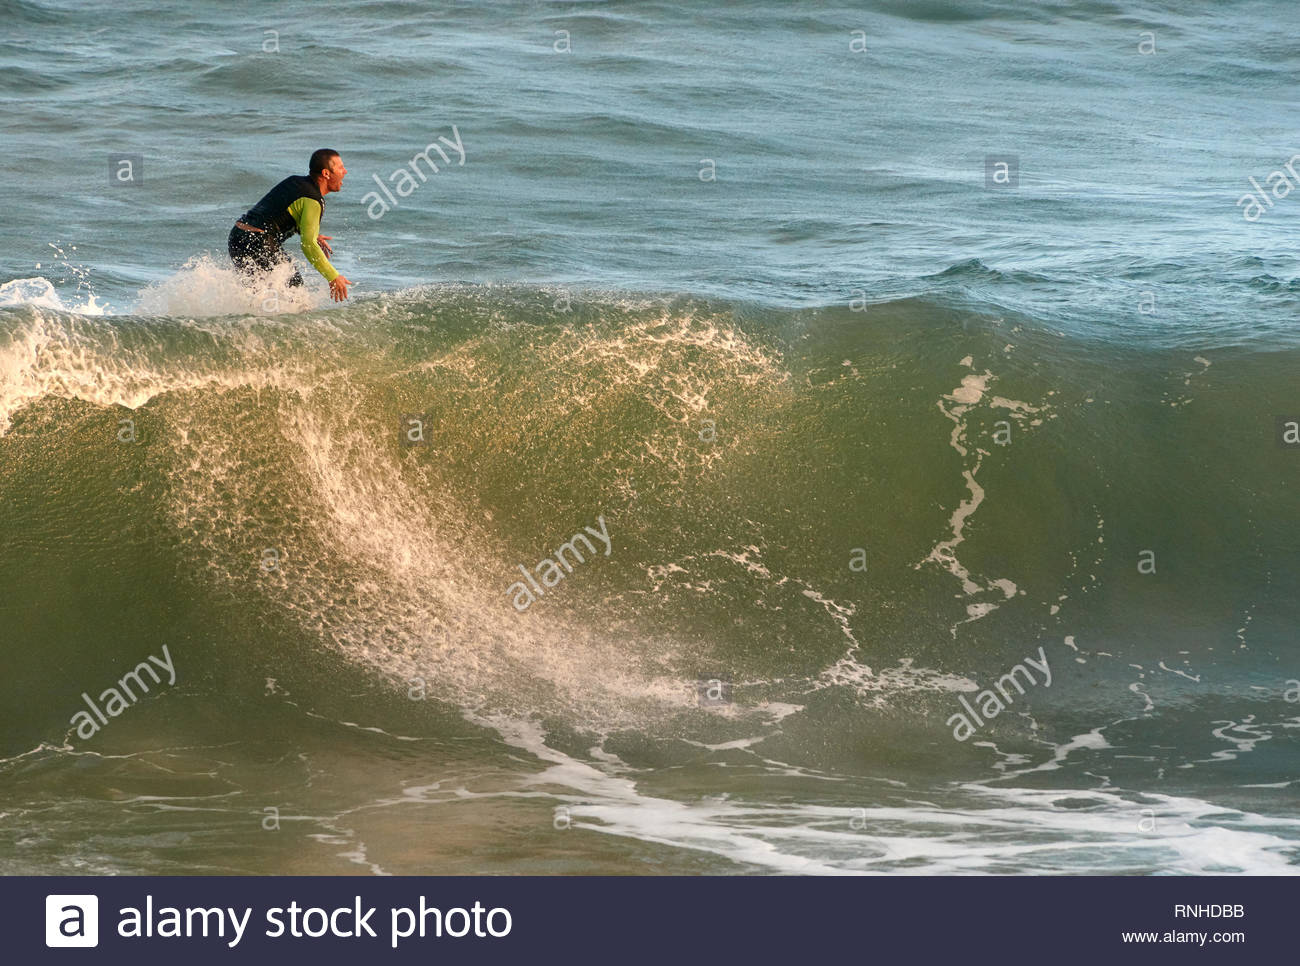 A Caucasian male surfer, kook, expressing happy dissatisfaction on his board, after just missing a nice wave at Turners Beach, Yamba, NSW, Australia. - Stock Image